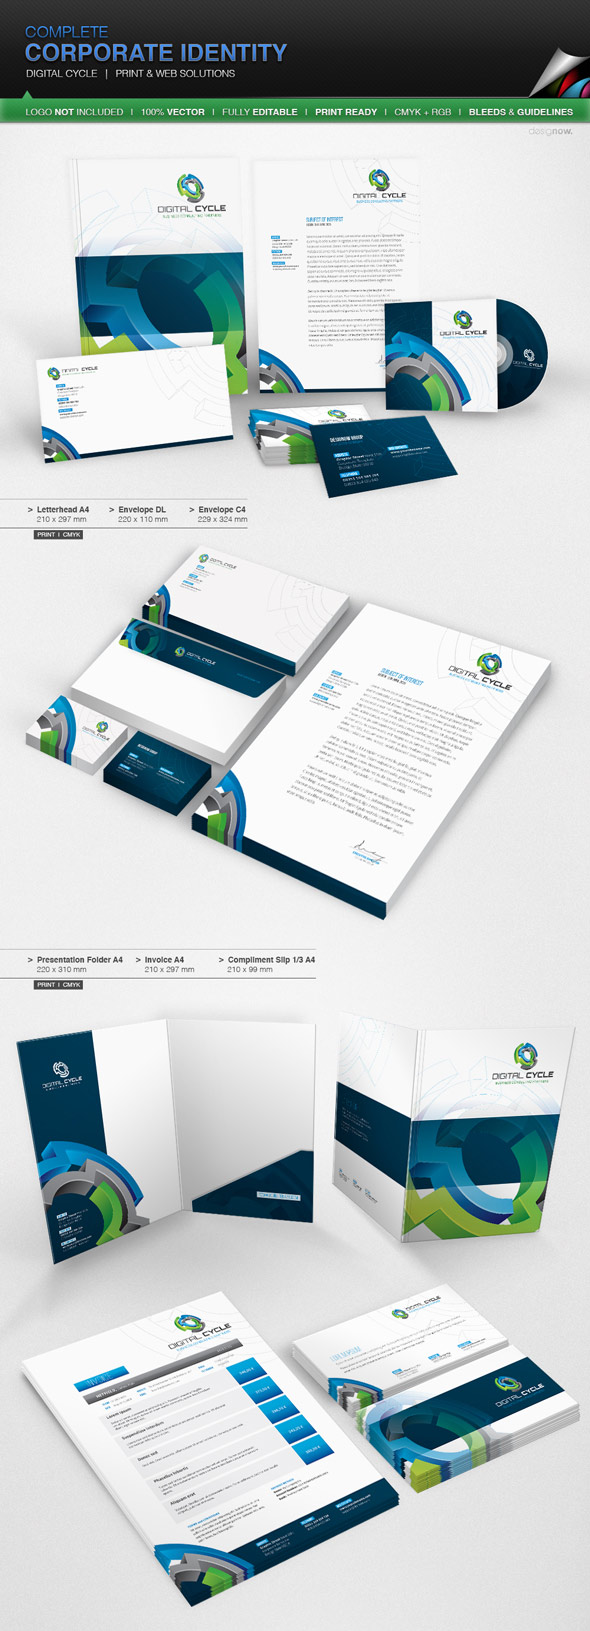 Corporate Identity Brand Set - Digital Cycle